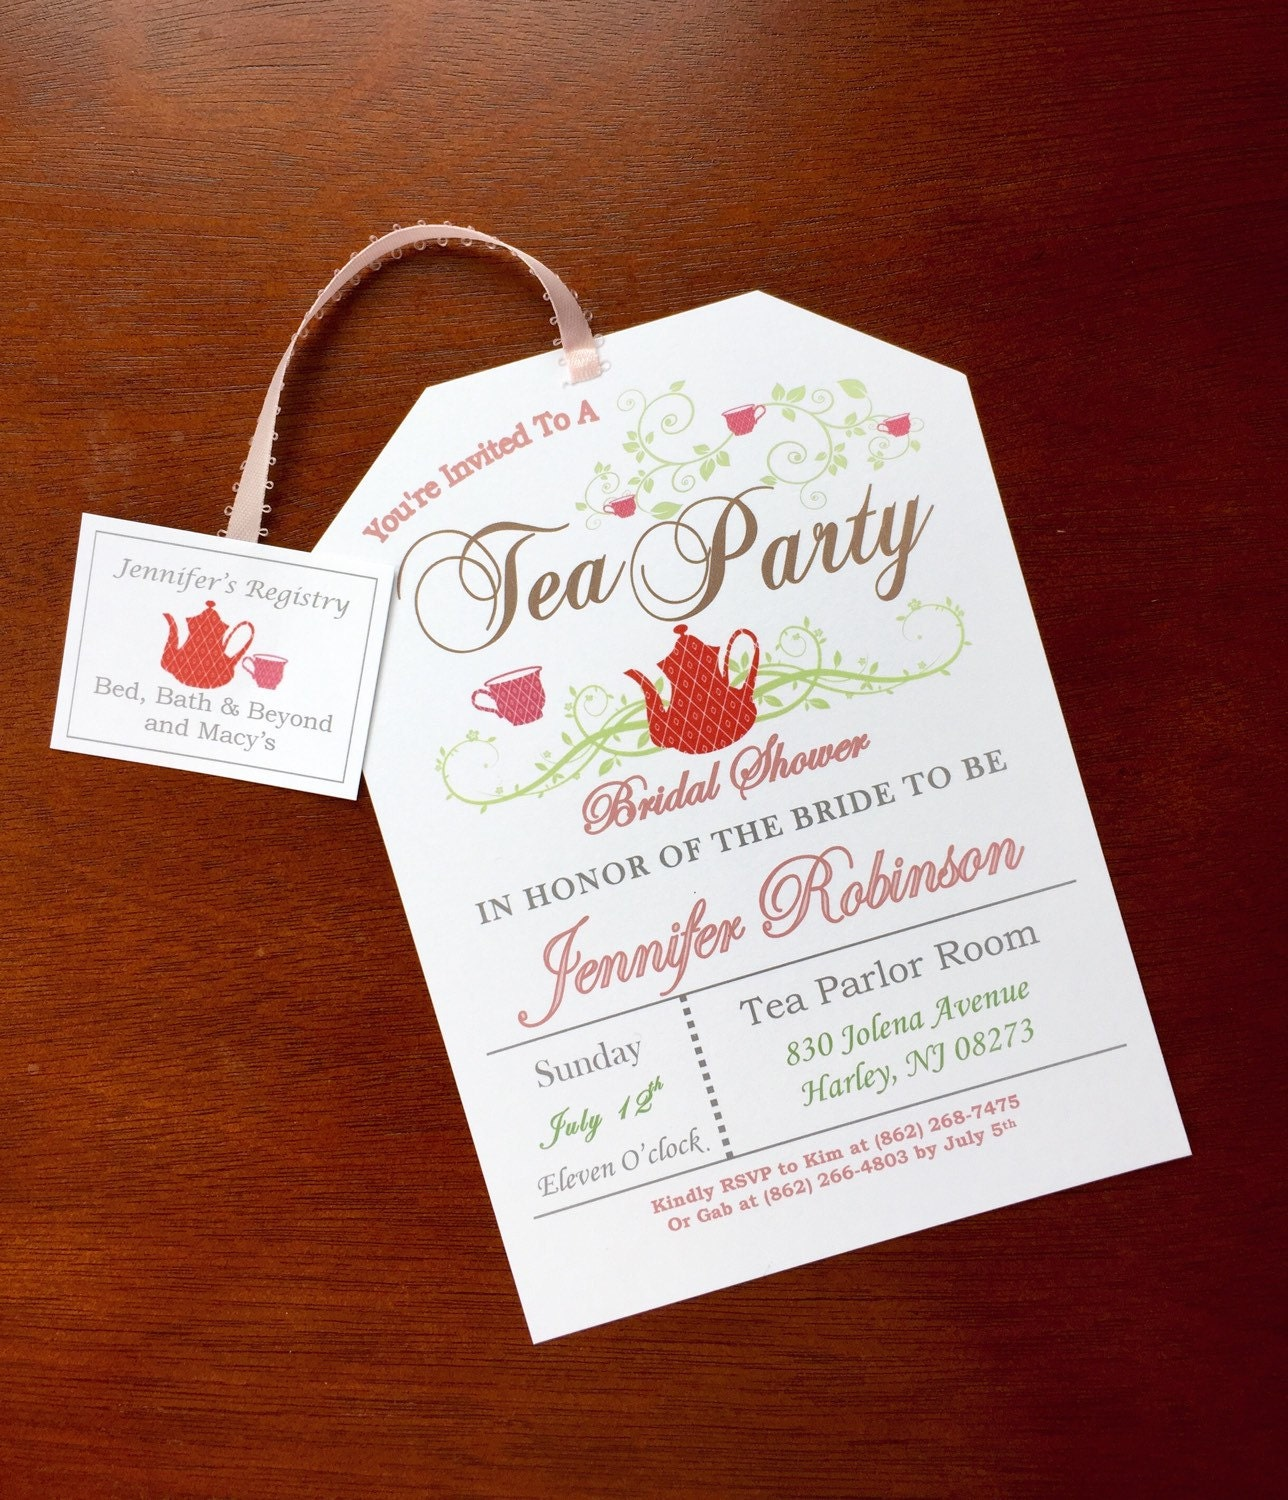 Tea party bridal shower invitations for Invitations for wedding shower